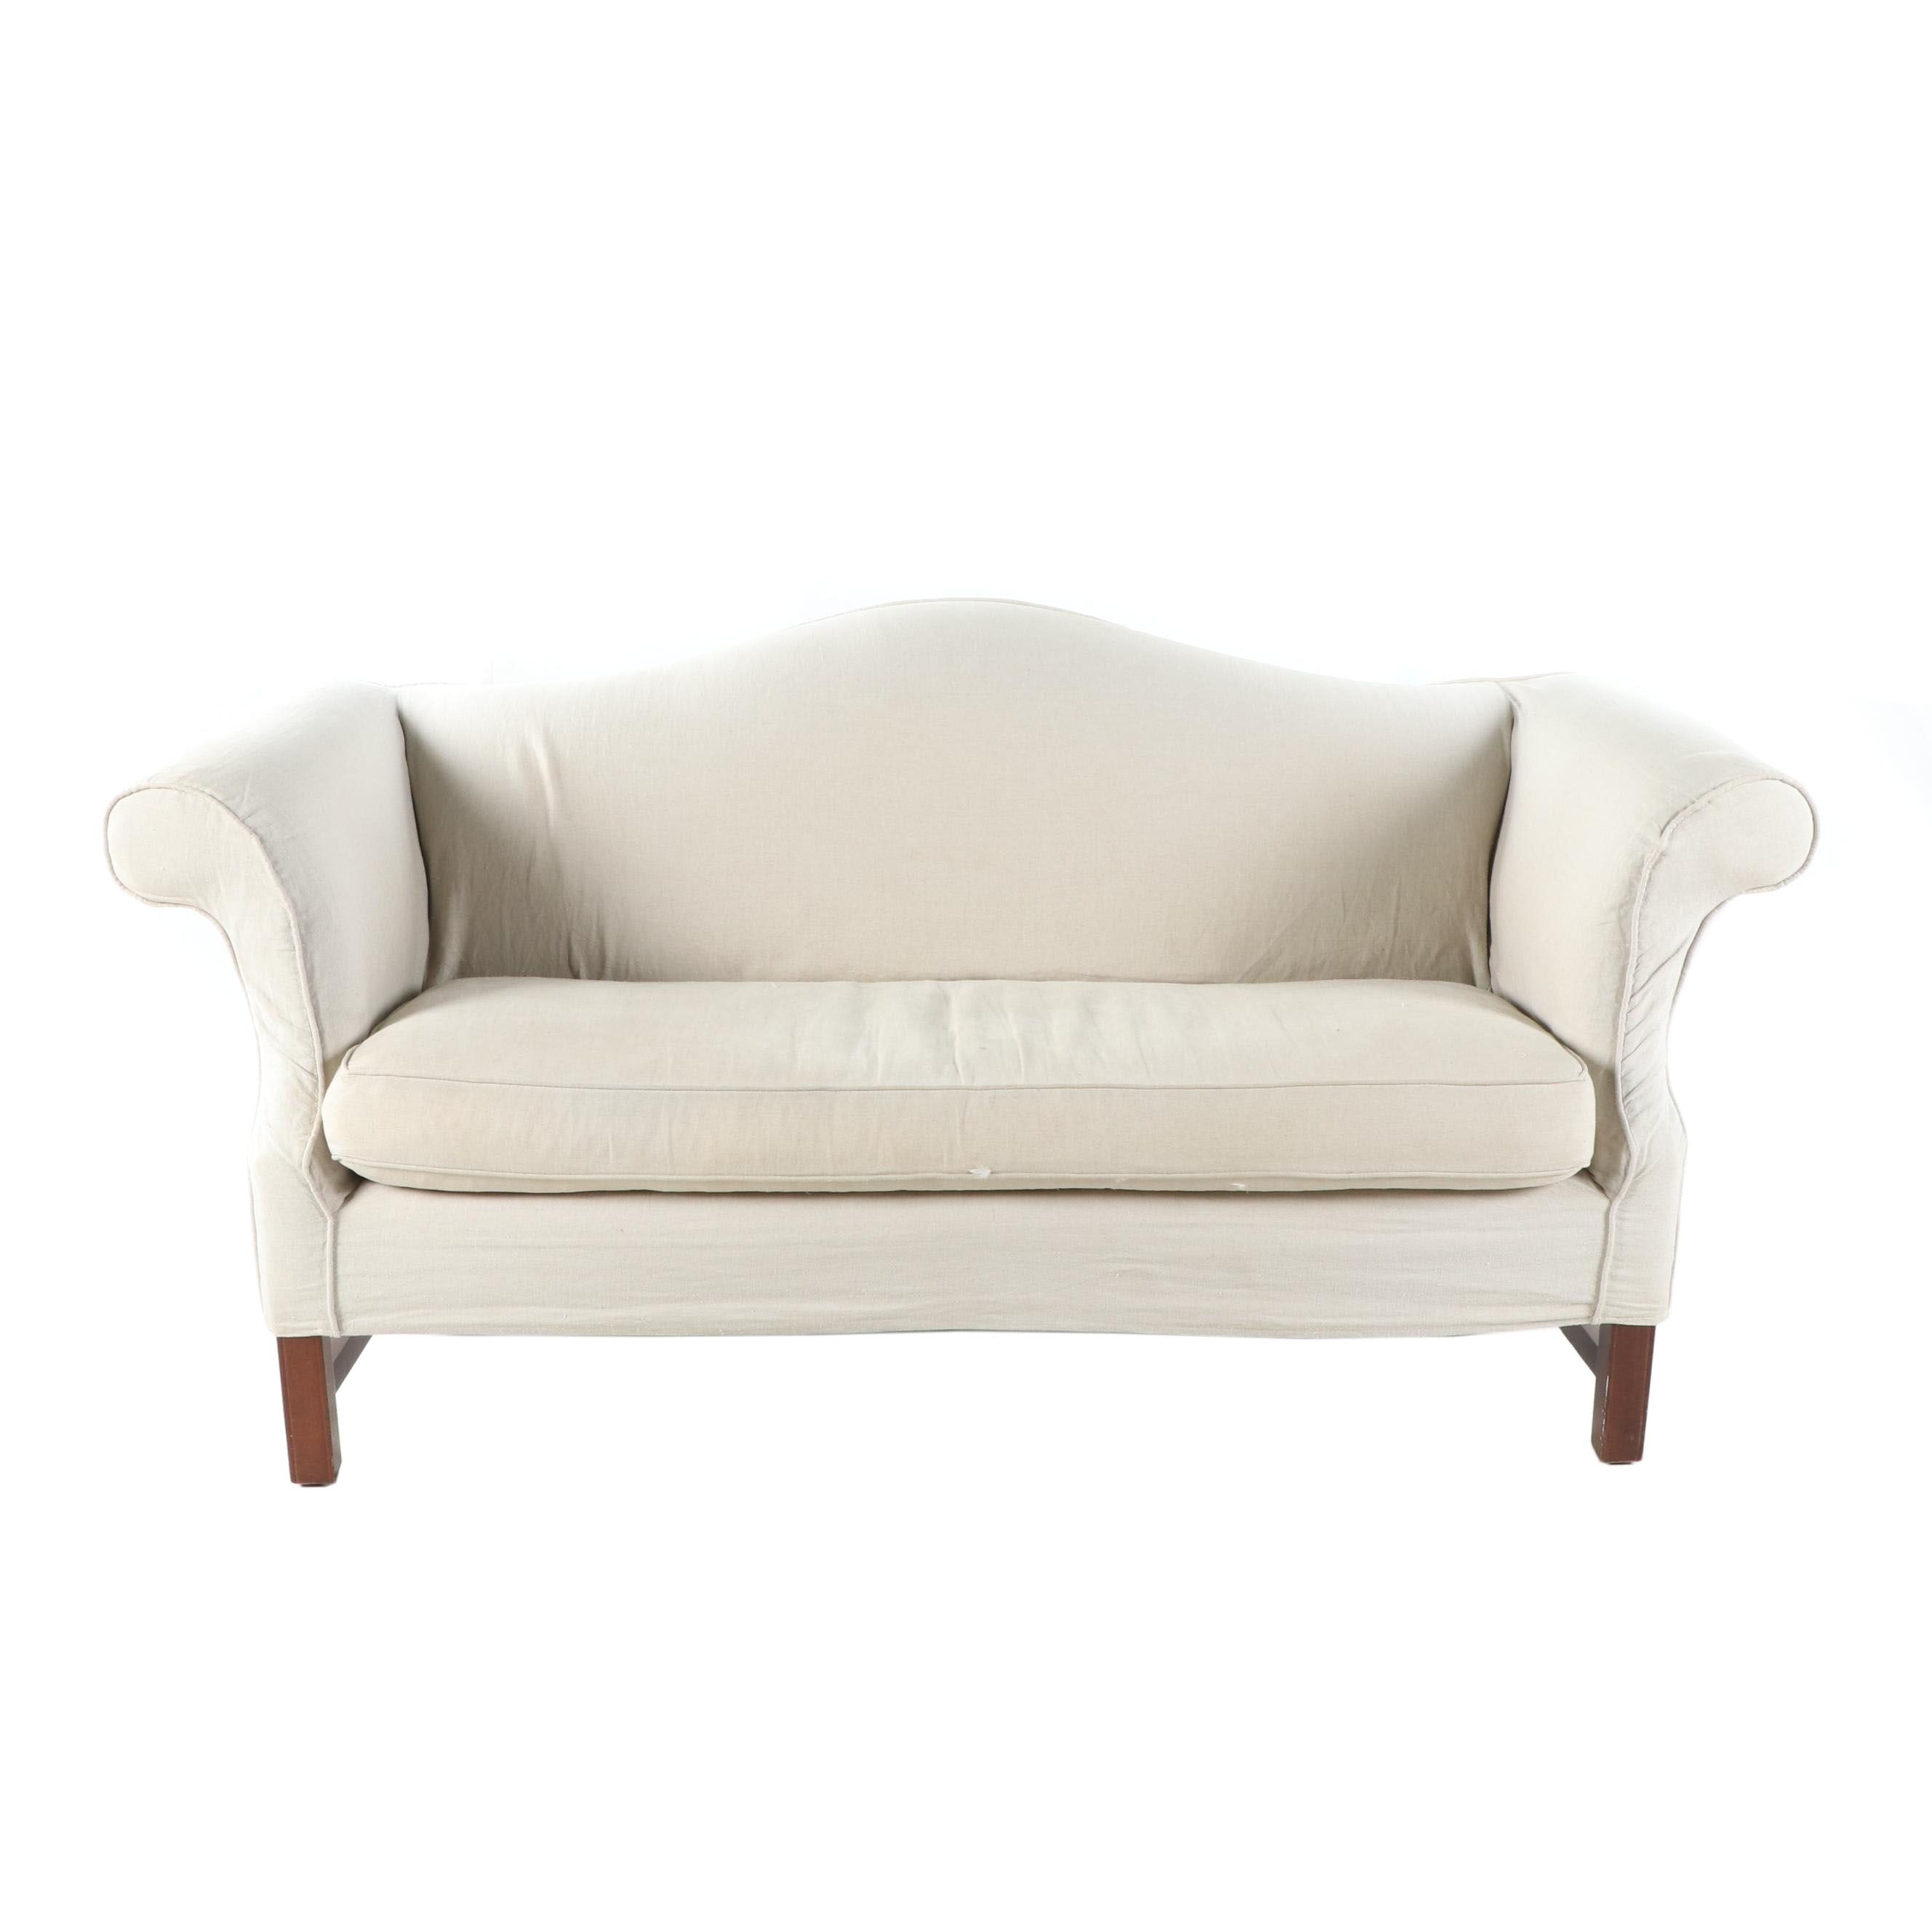 Camelback Sofa with Slipcover by Mitchell Gold + Bob Williams, 21st Century